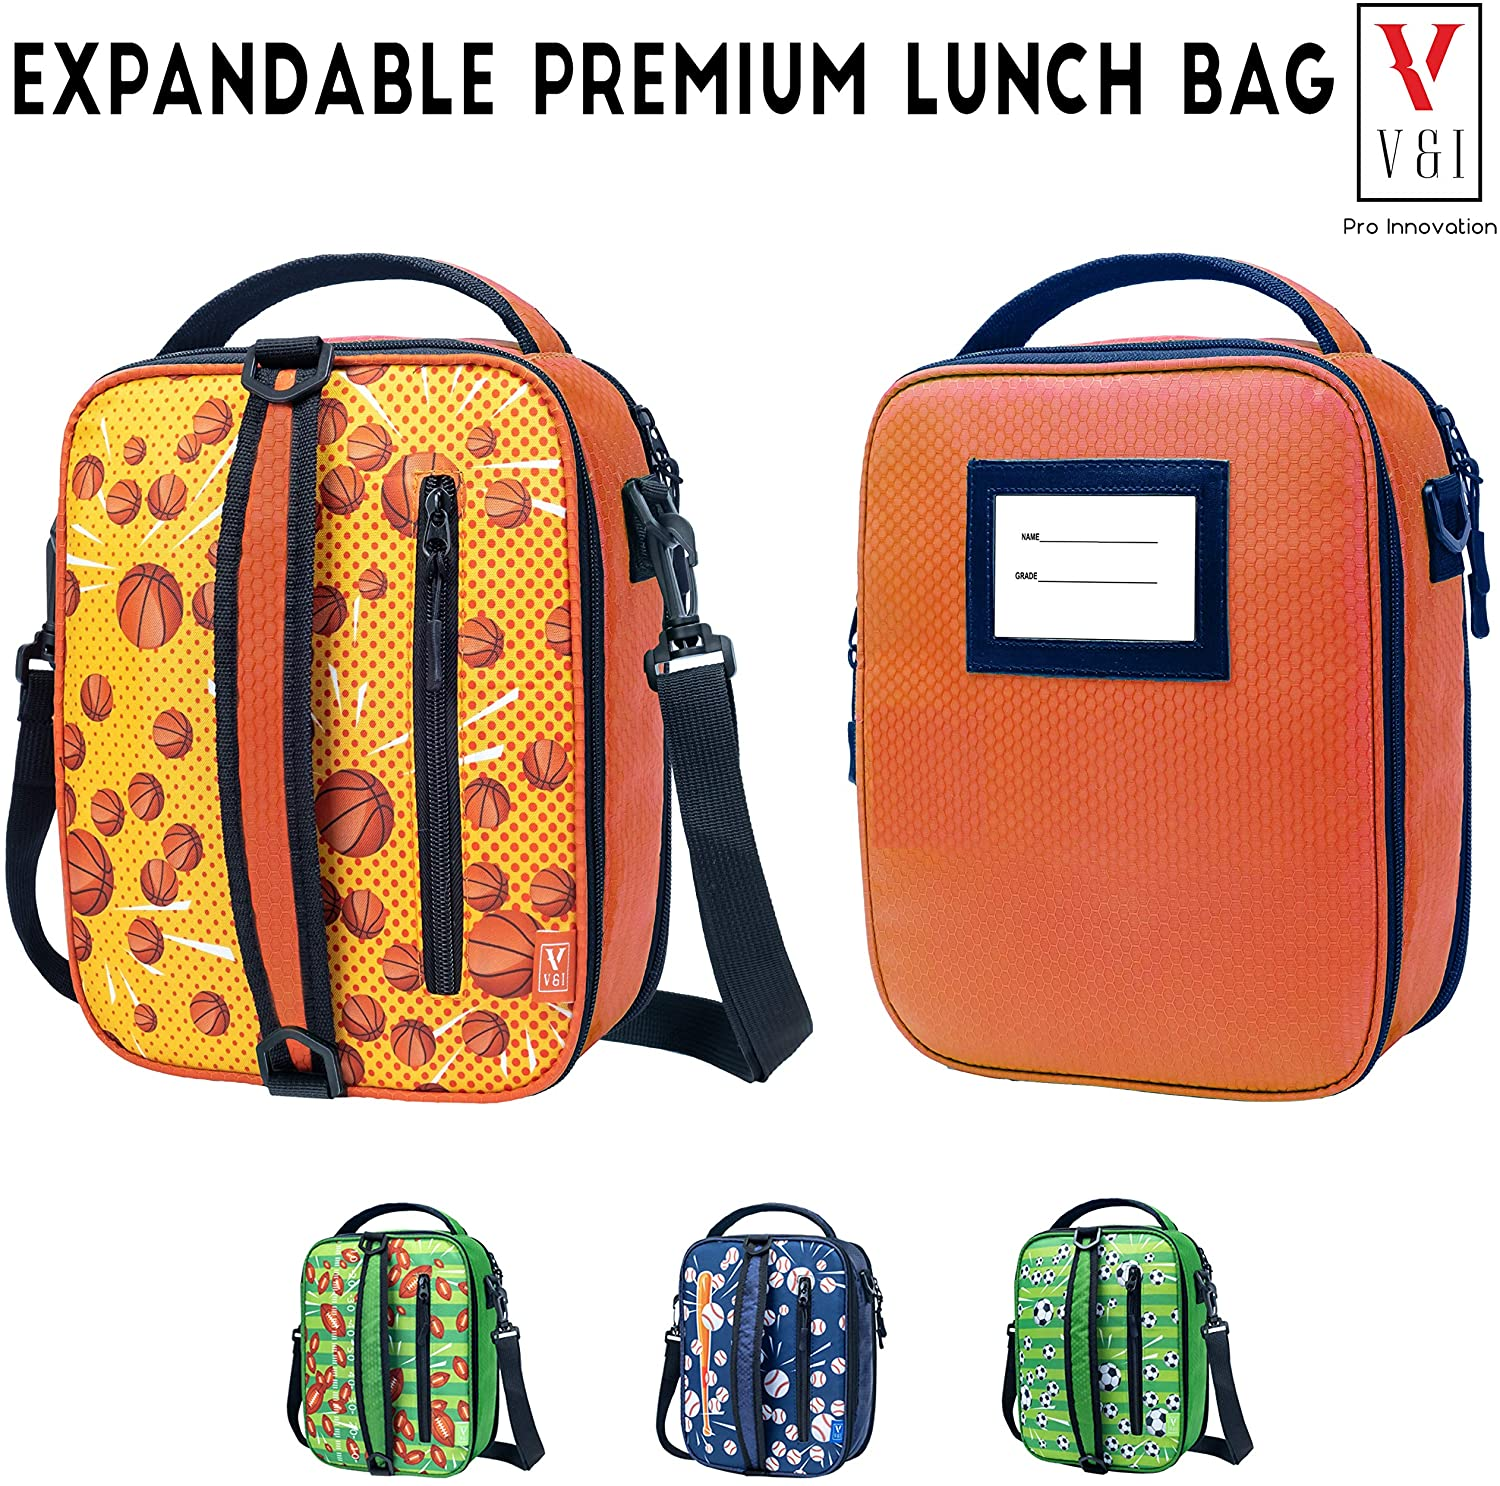 Kids Lunch Bag Insulated School Lunch Boxes Boys Girls Basketball Sports Washable Freezable Durable Reusable Soft Thermal Leakproof Expandable Lunchbox Cooler Fits Yumbox Snack Box Bento Container